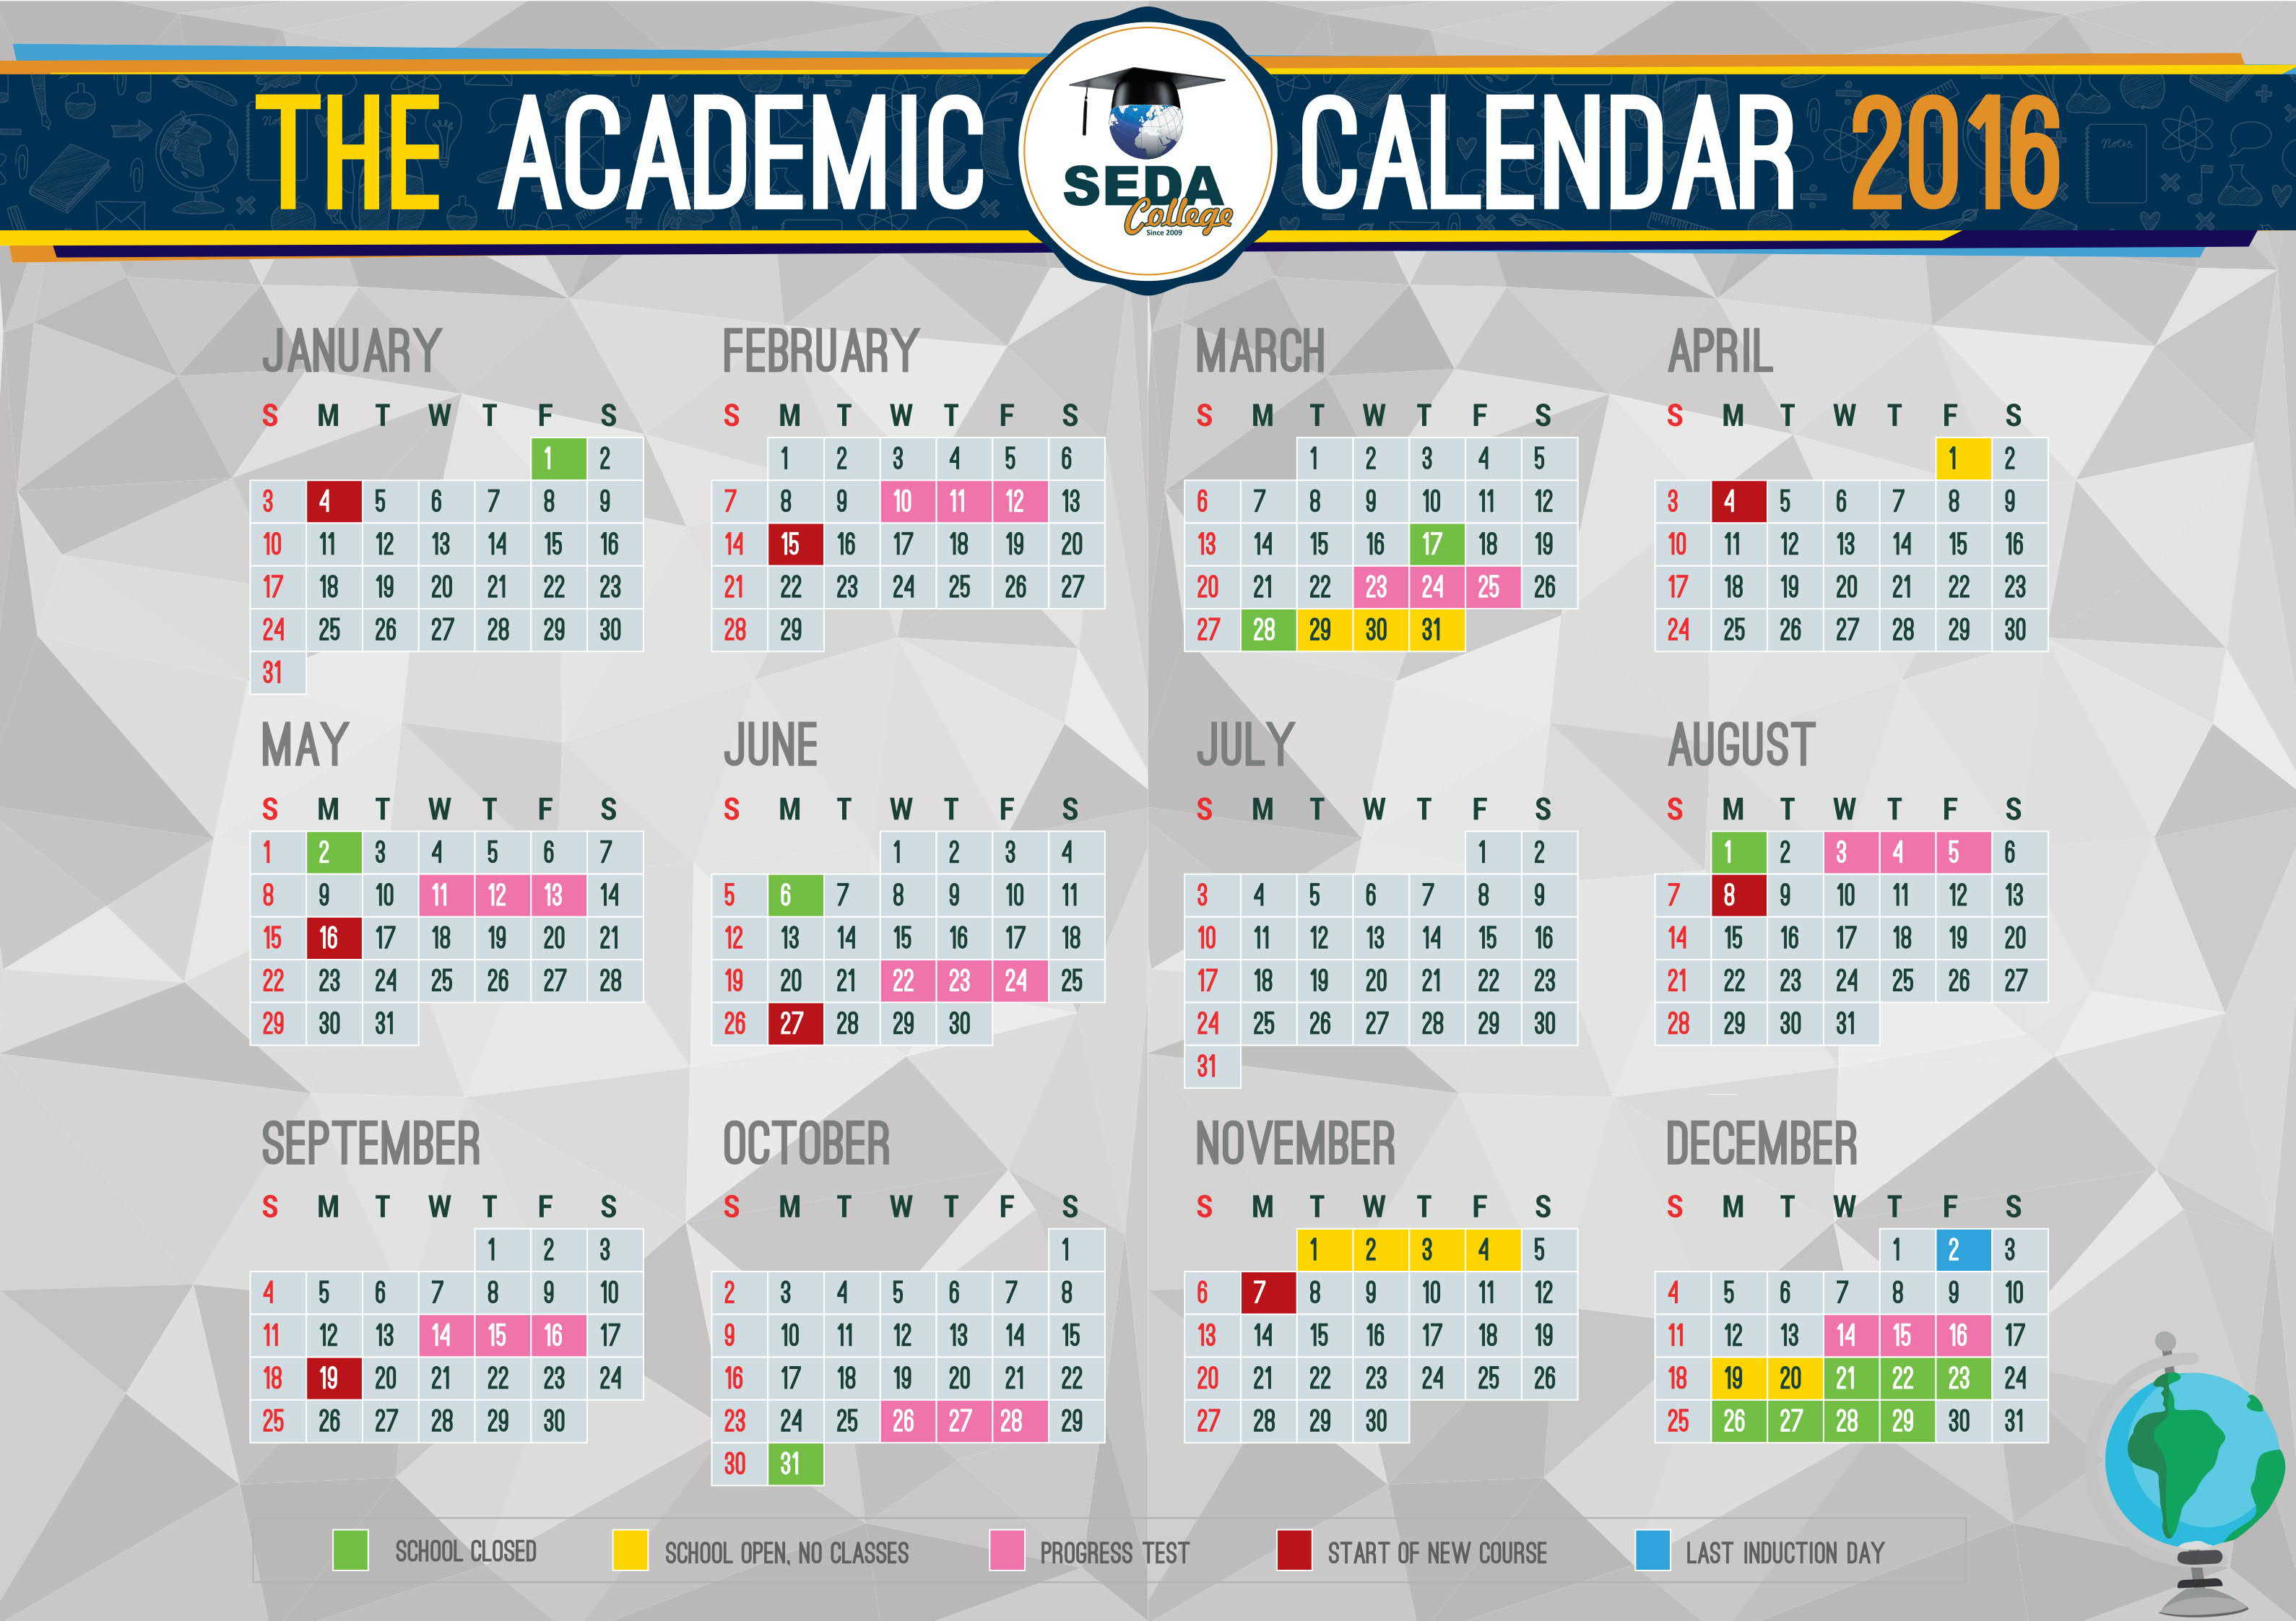 Academic Calendar of SEDA College for 2016 year